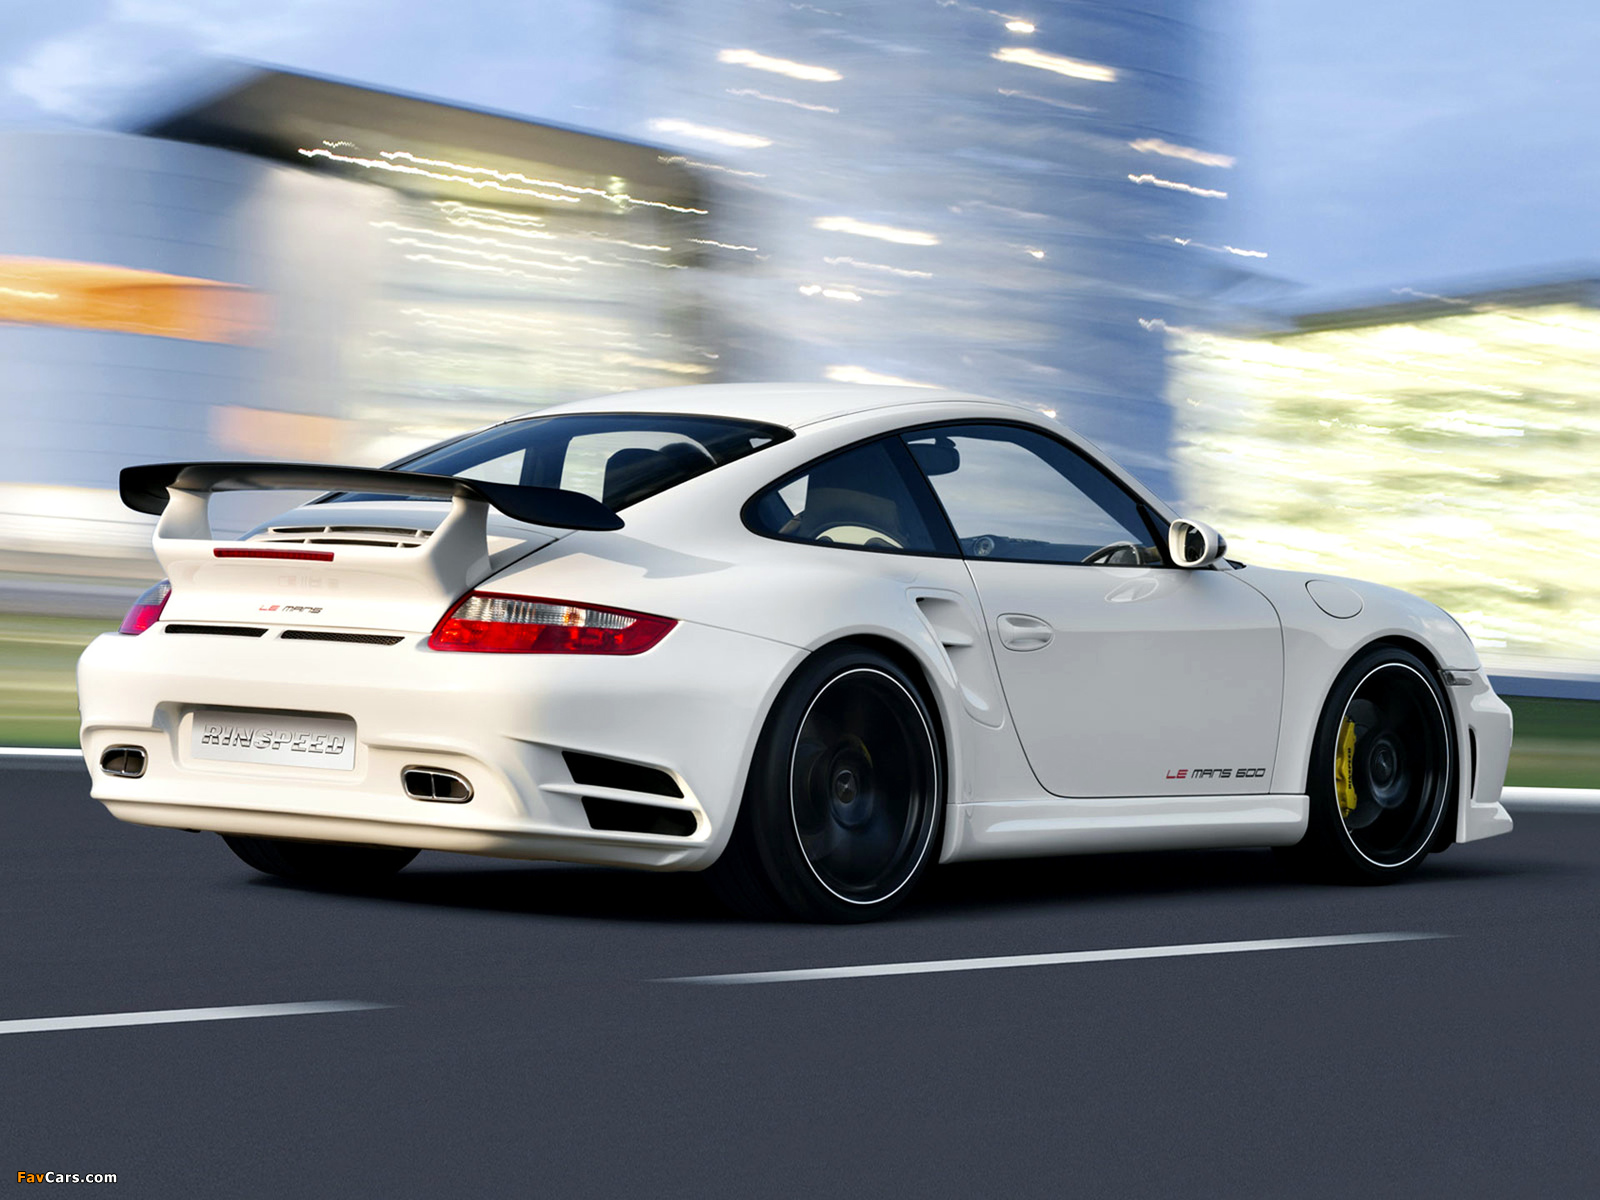 Rinspeed LeMans based on Porsche 911 Turbo (997) 2007 pictures (1600 x 1200)